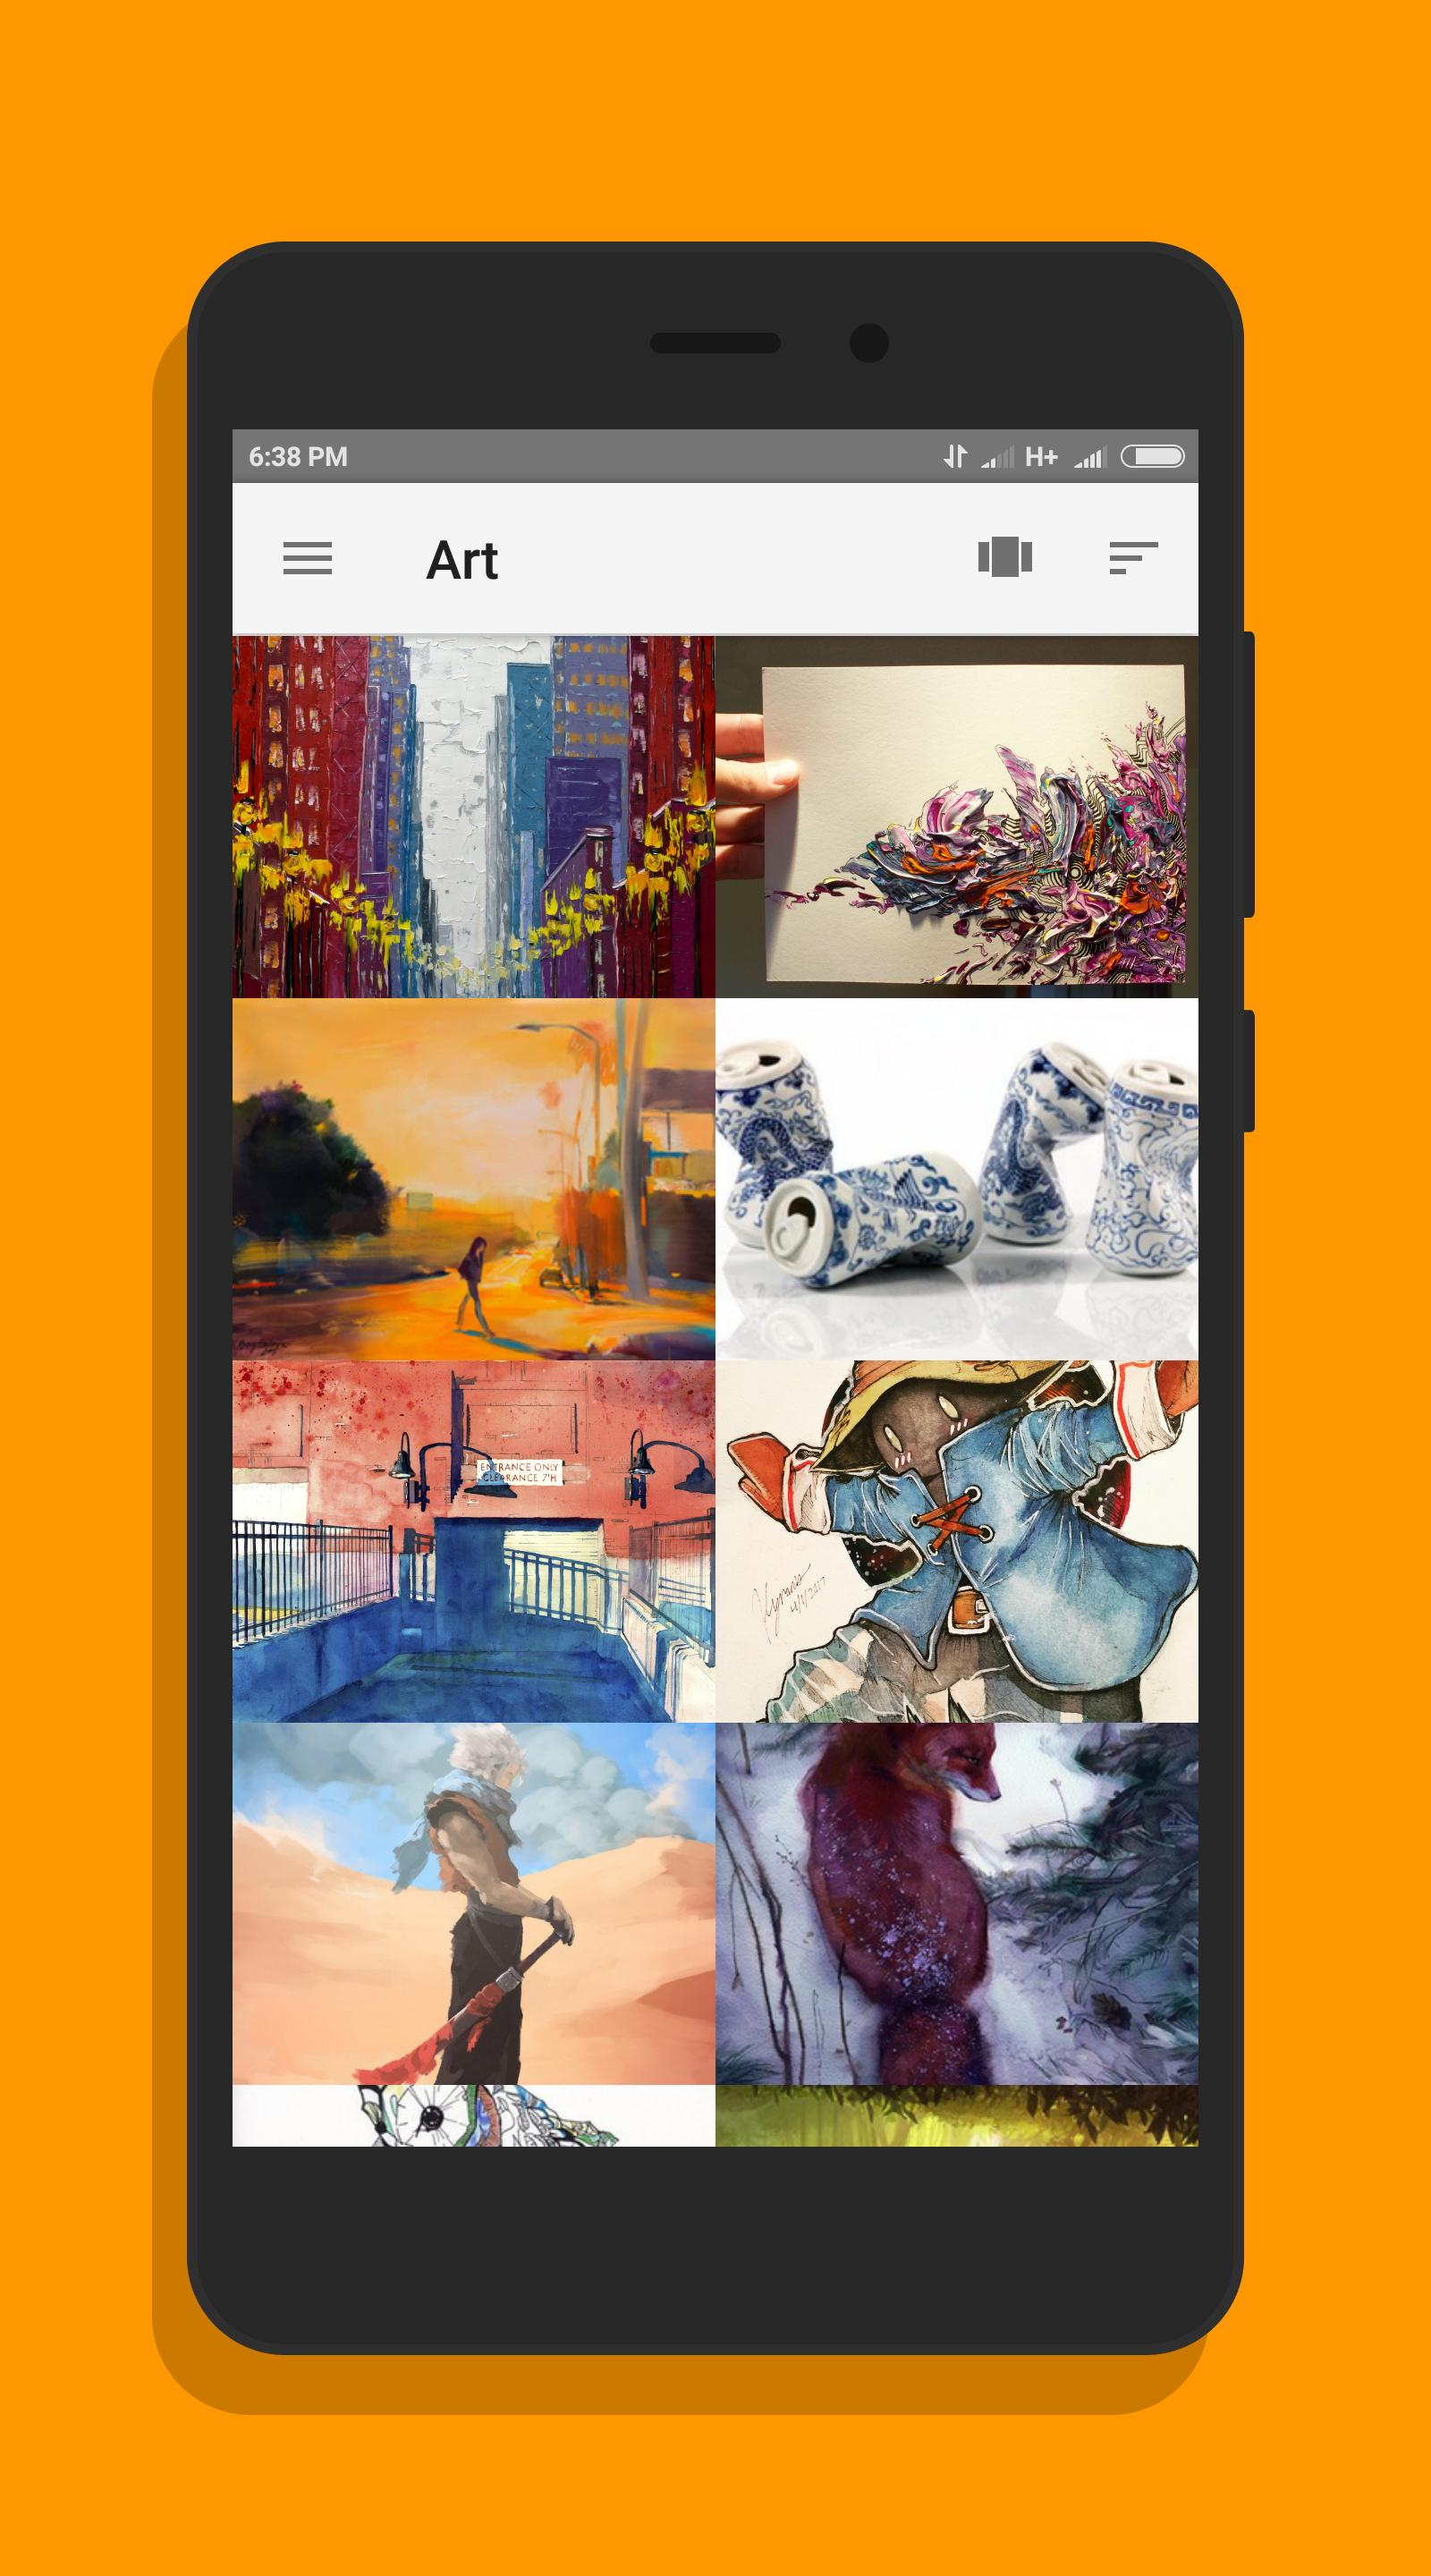 Walls for reddit (Unreleased) for Android - APK Download